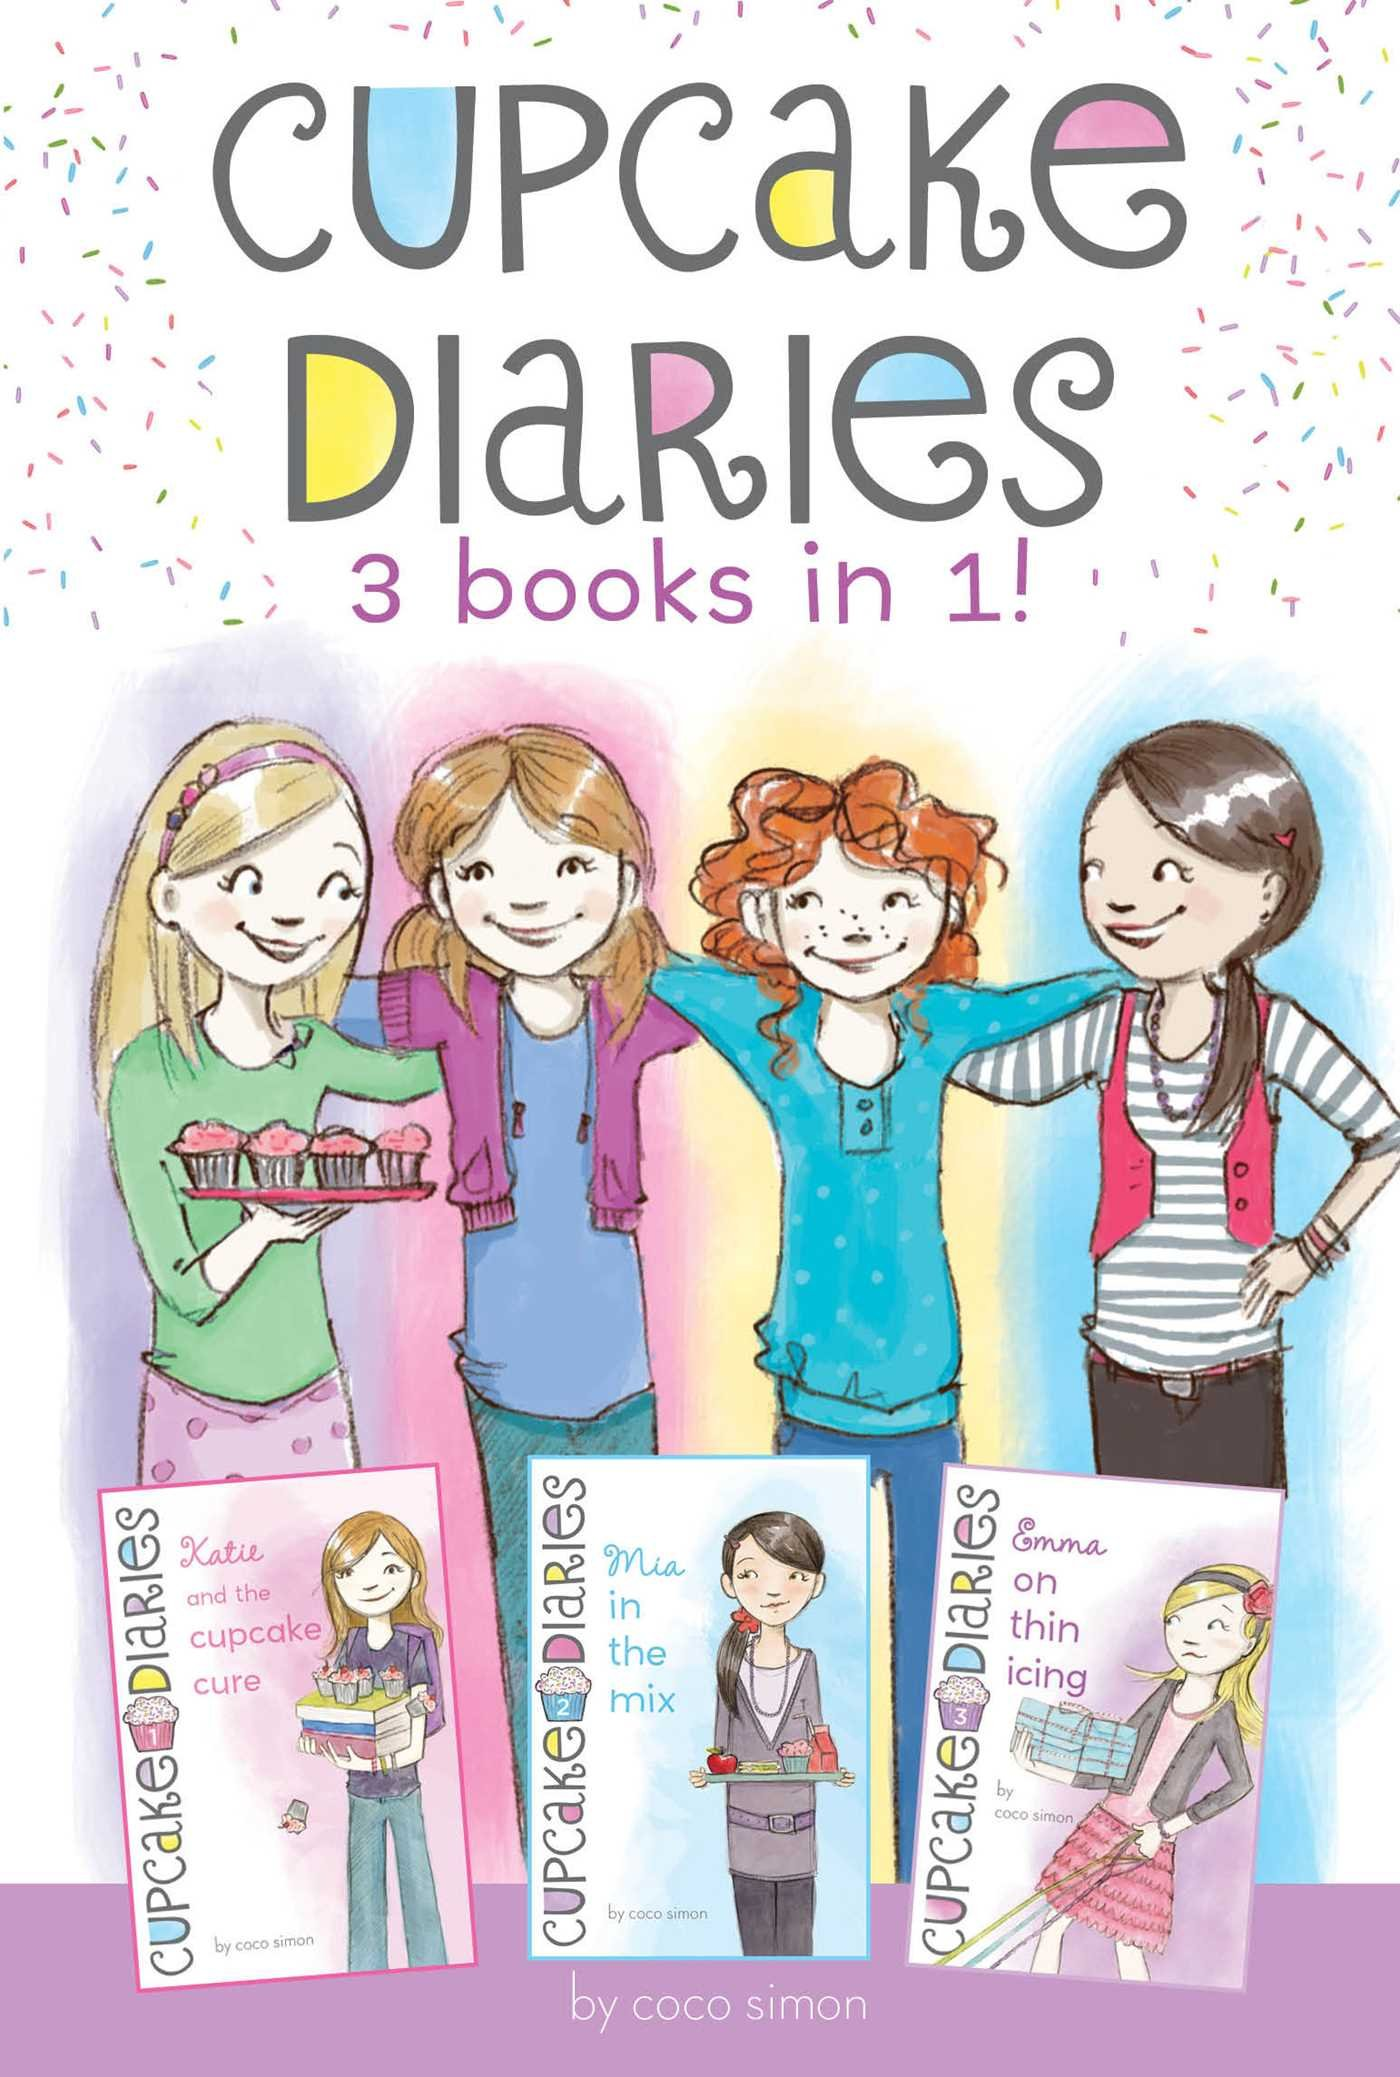 Cupcake Diaries 3 Books in 1!: Katie and the Cupcake Cure; Mia in the Mix; Emma on Thin Icing by Simon Spotlight